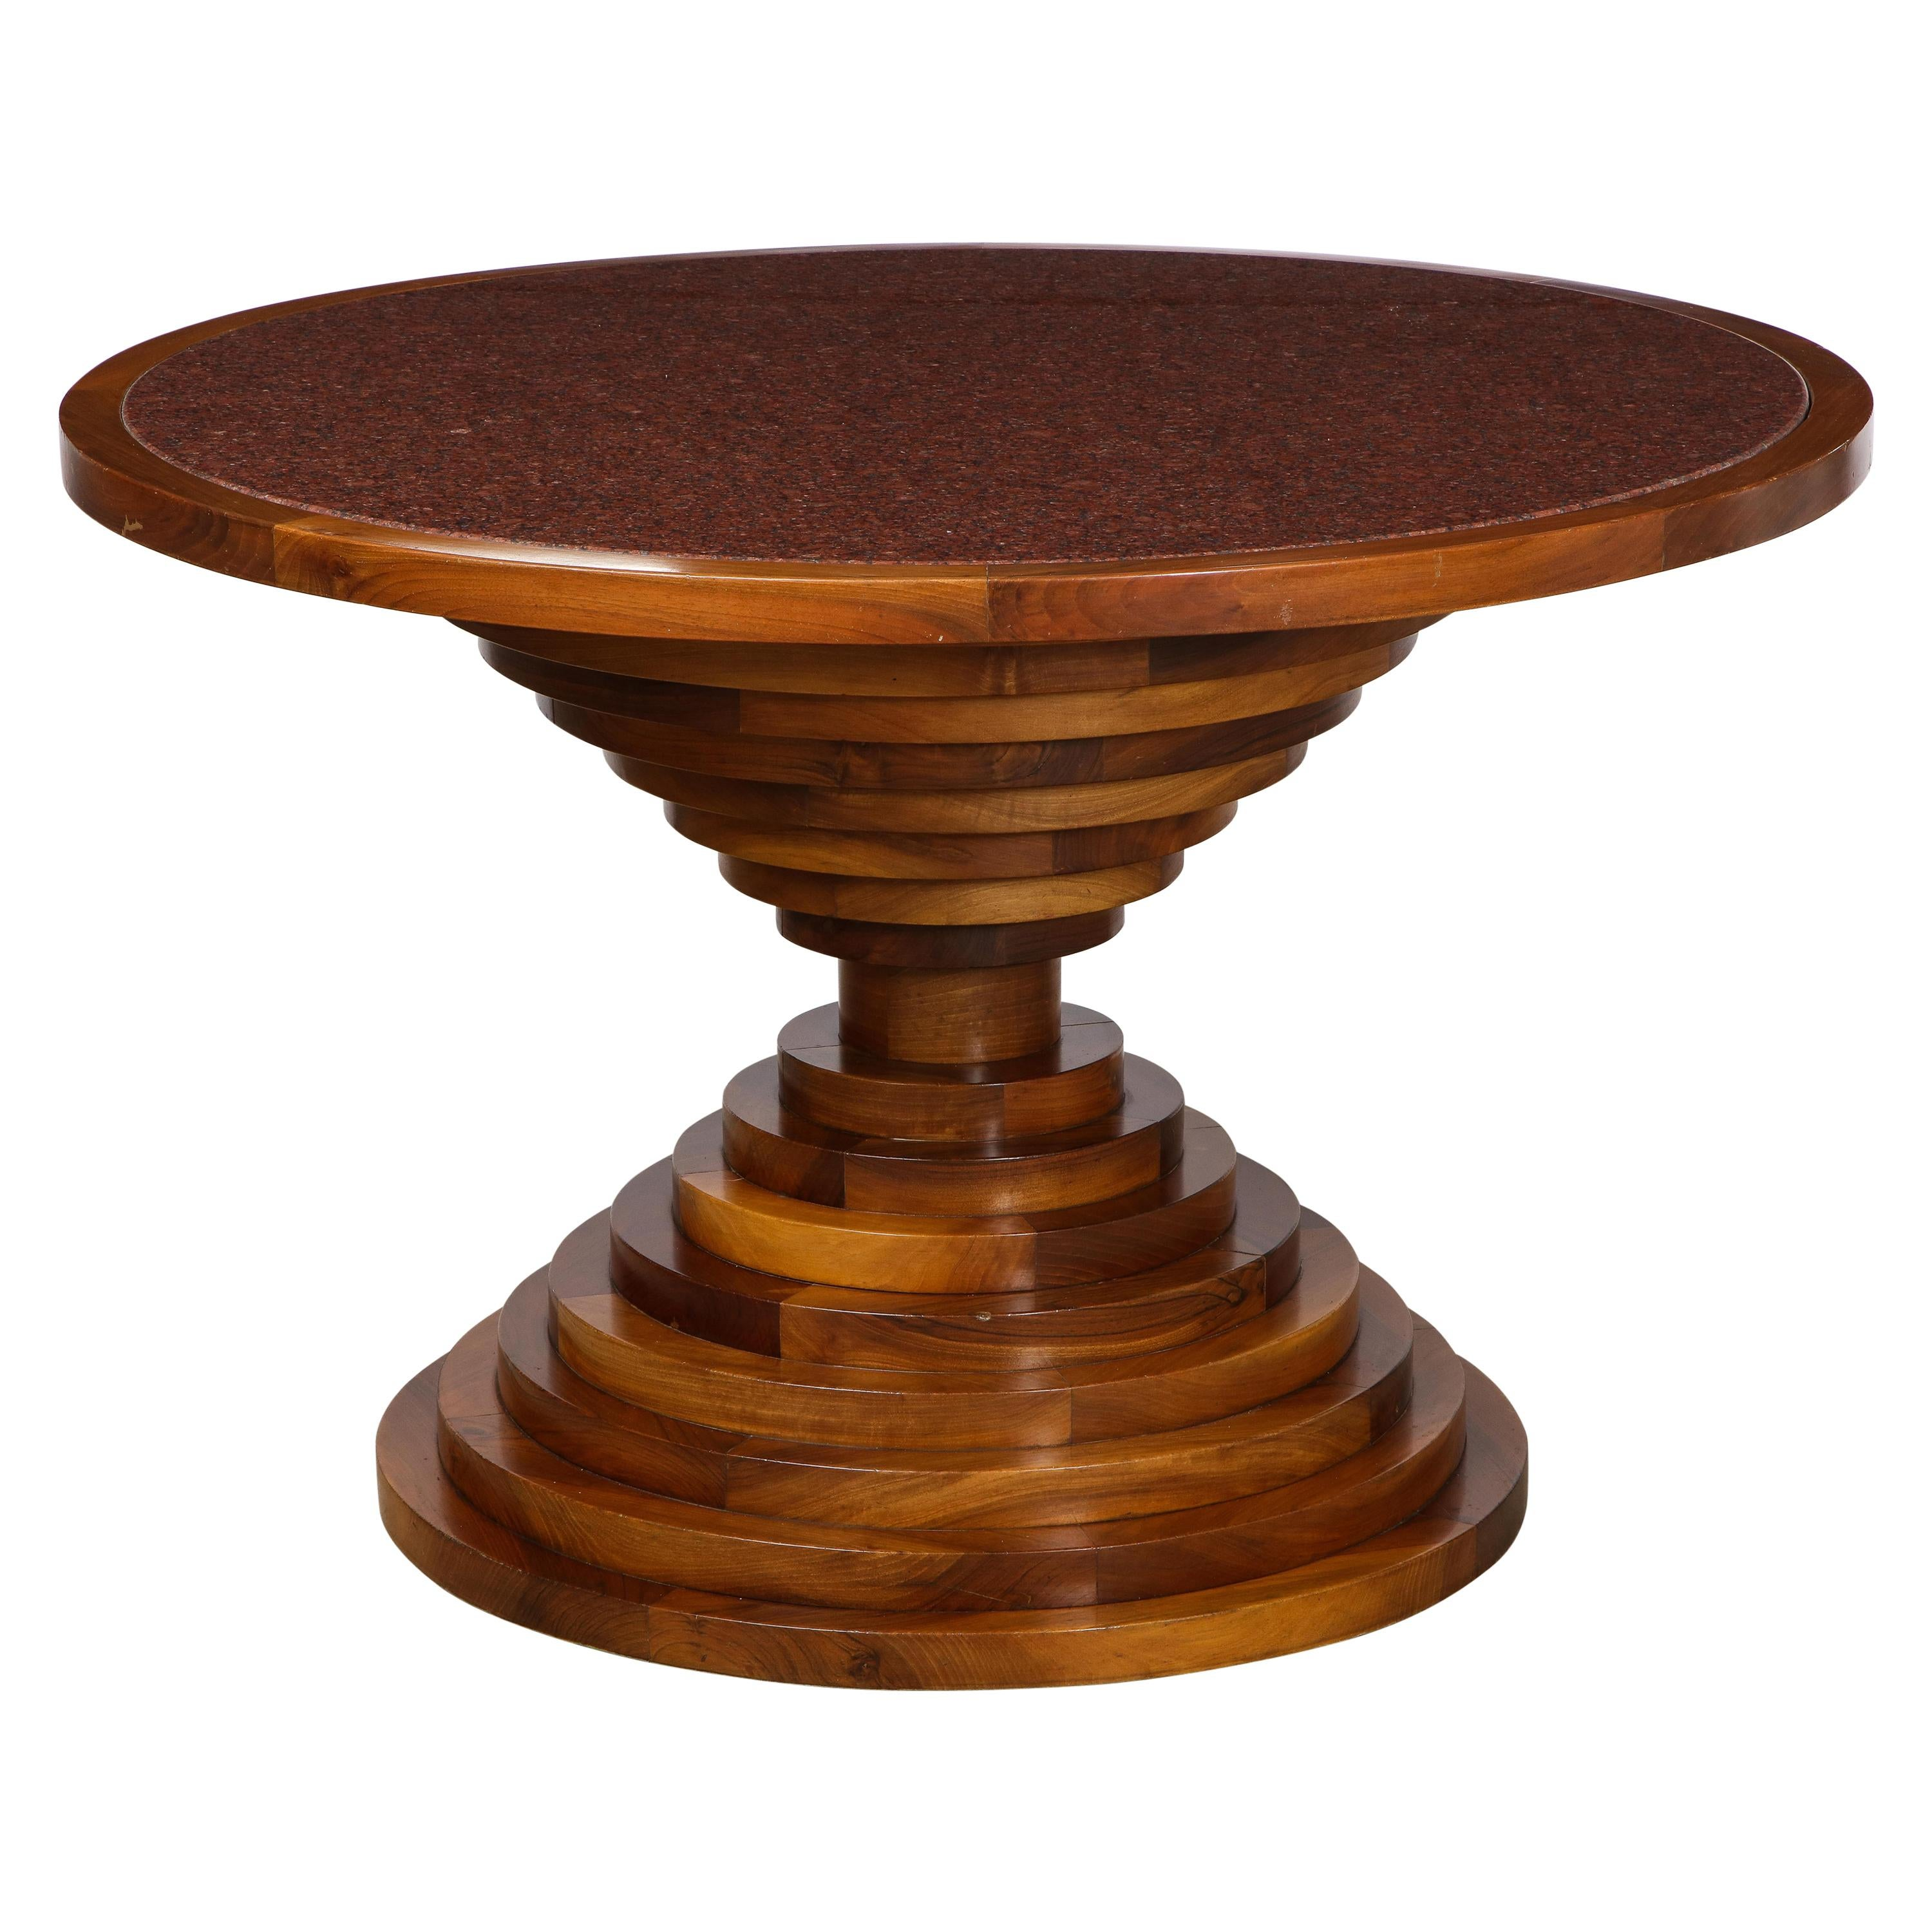 Italian 1970's Walnut Circular Dining Table with Marble Top